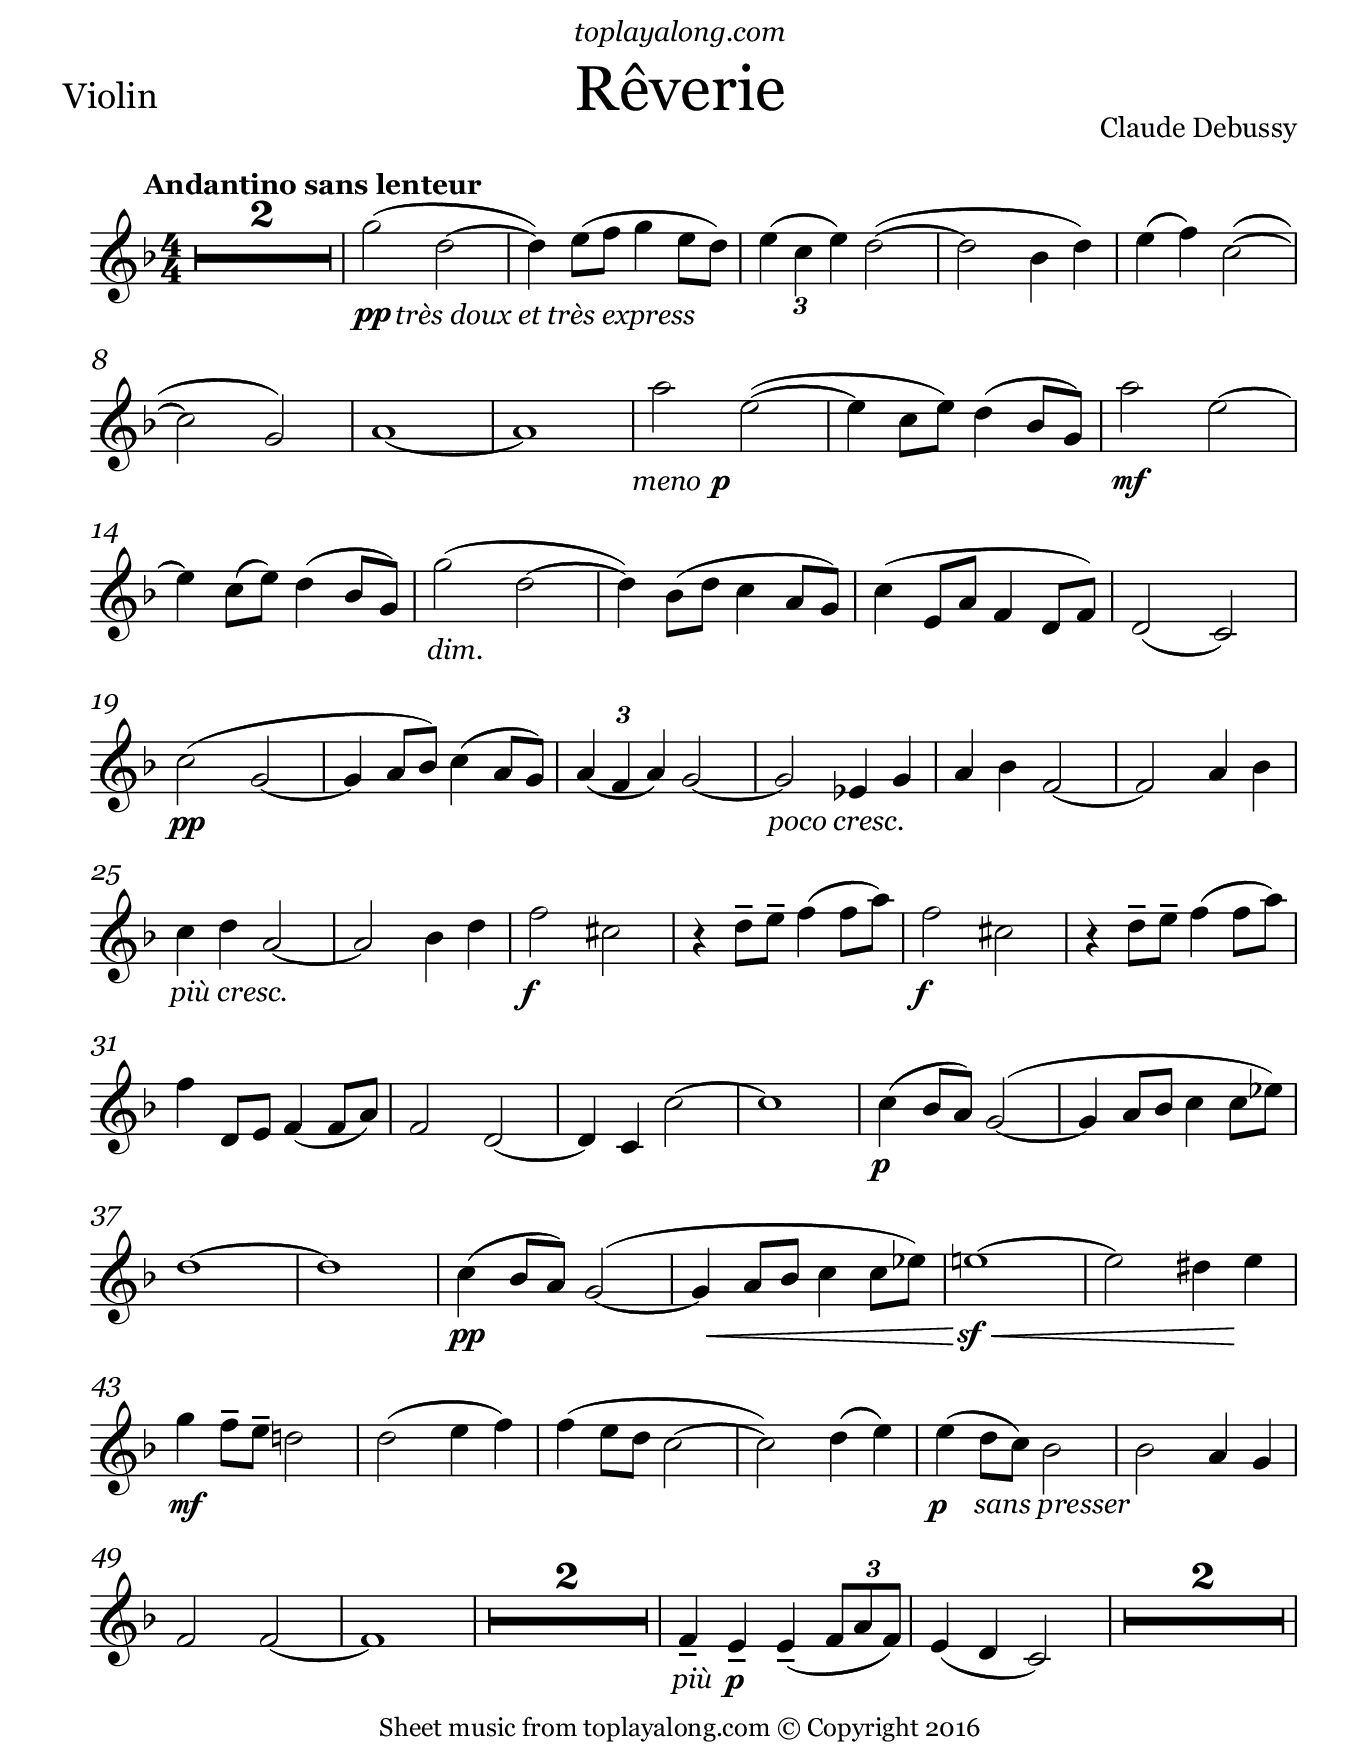 Rêverie by Debussy. Sheet music for Violin, page 1.